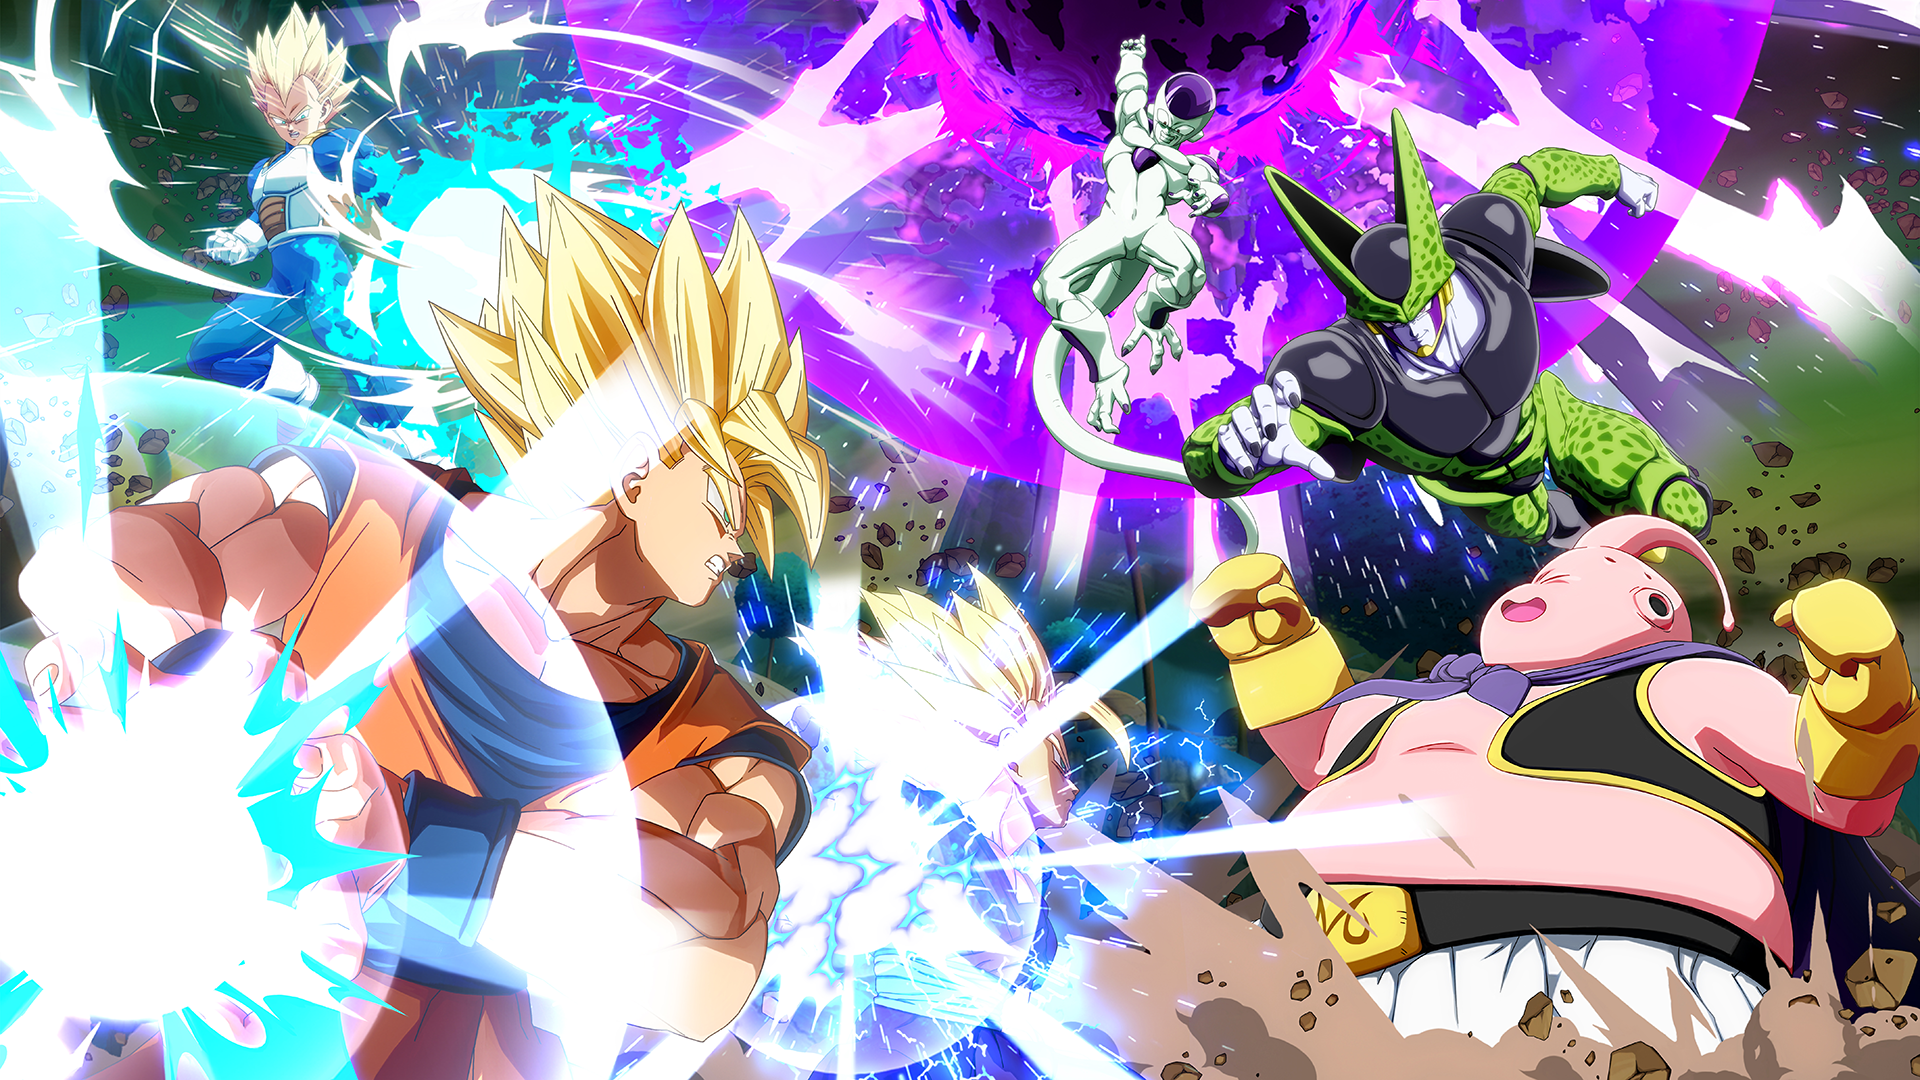 Fondos De Pantalla De Dragon Ball Fighterz Wallpapers Hd Gratis